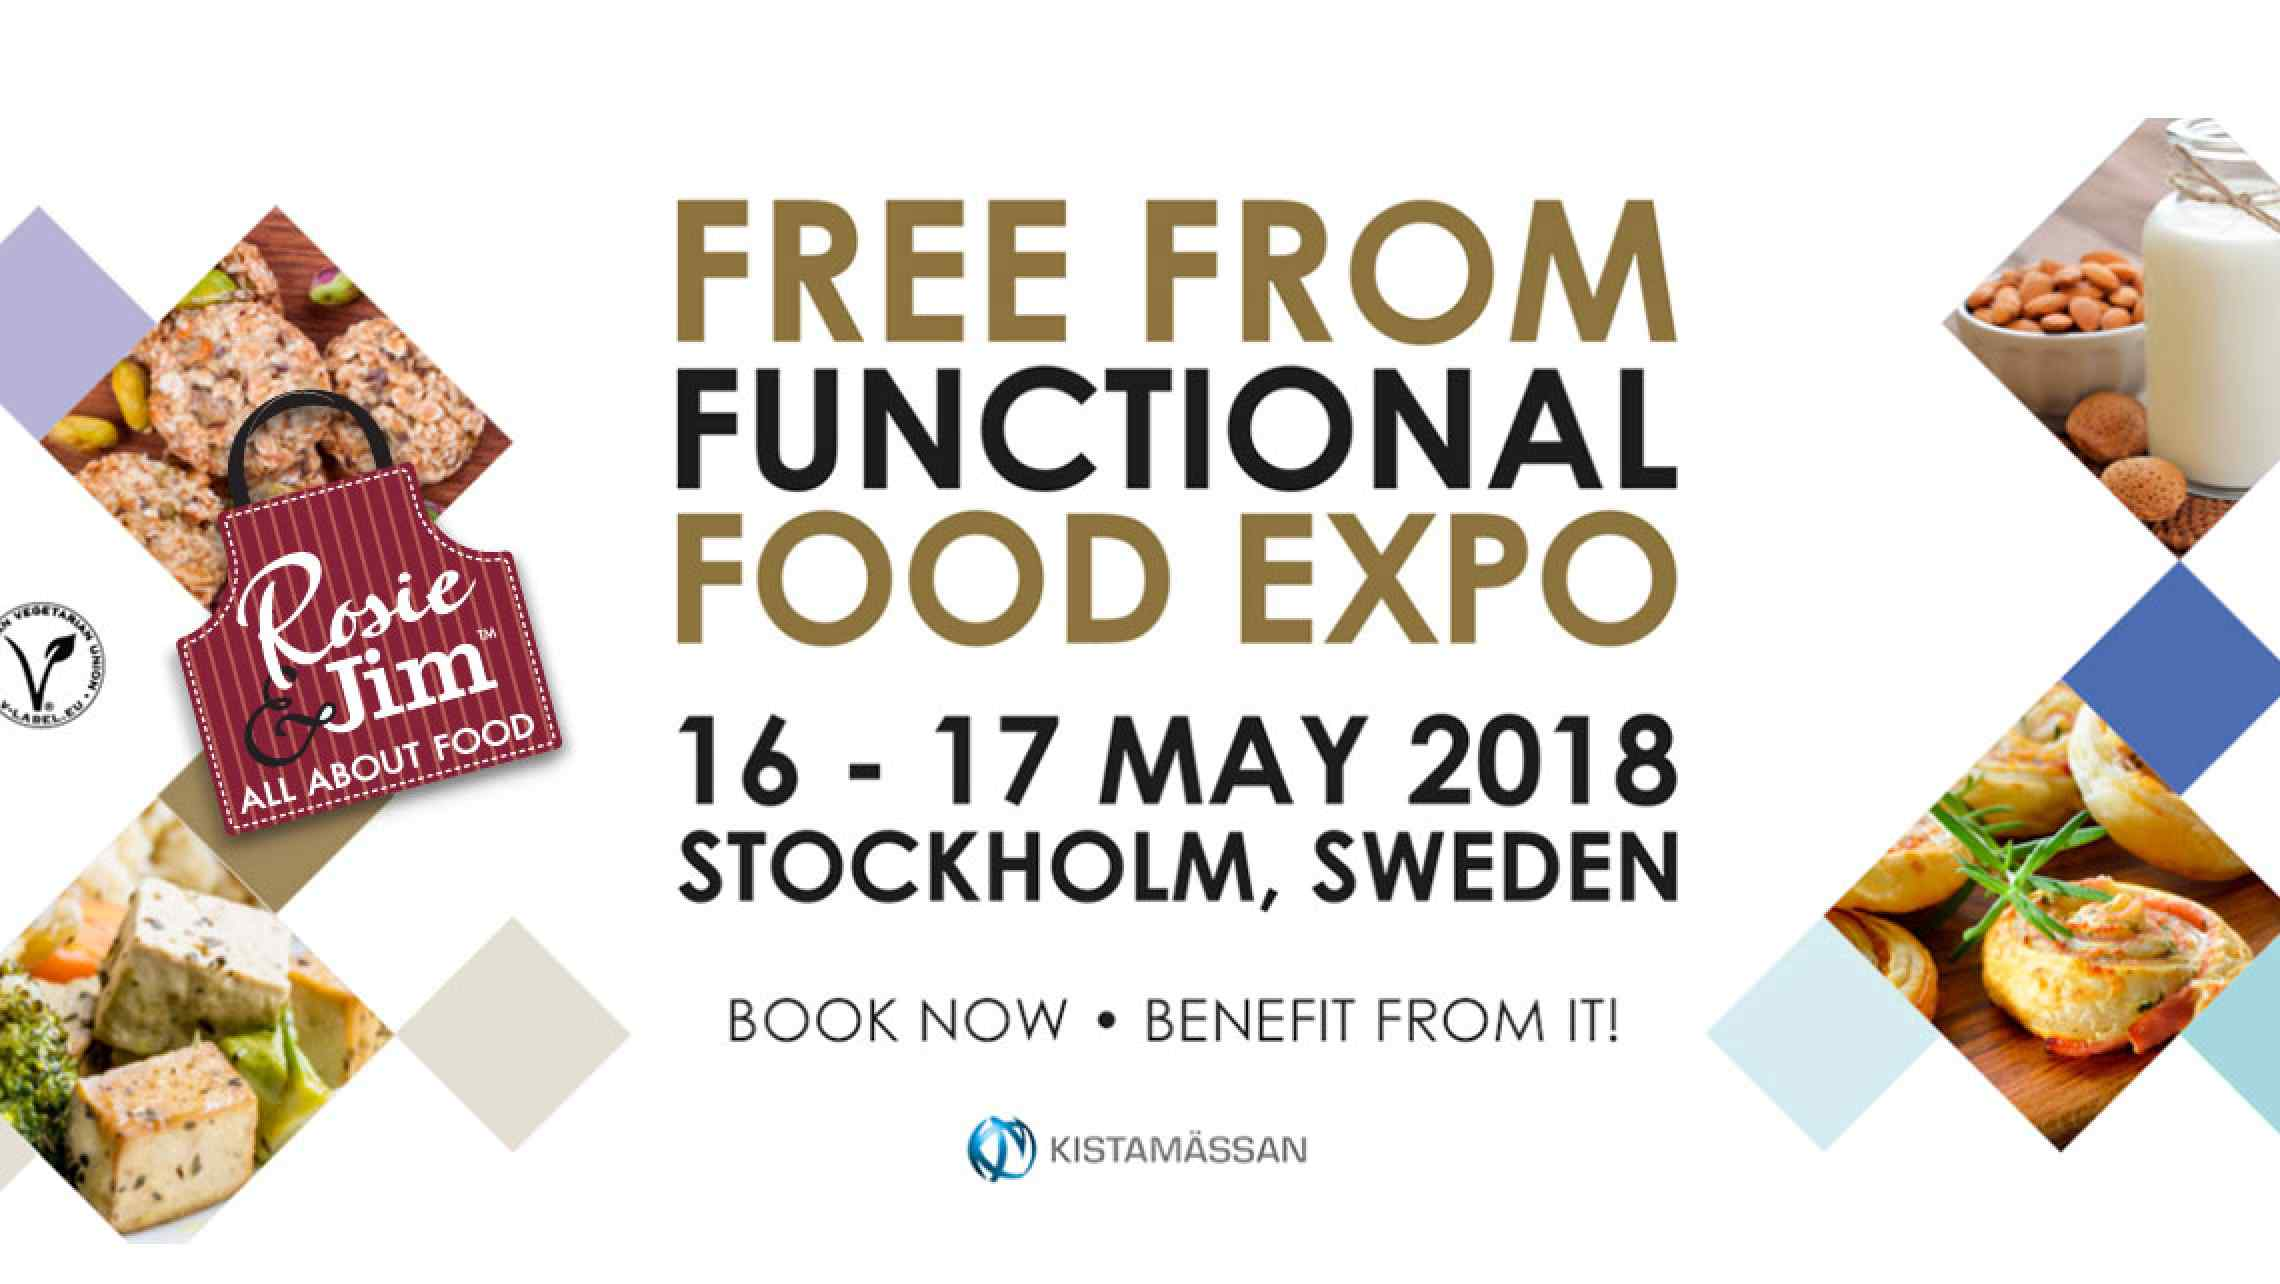 free from functional food expo stockholm